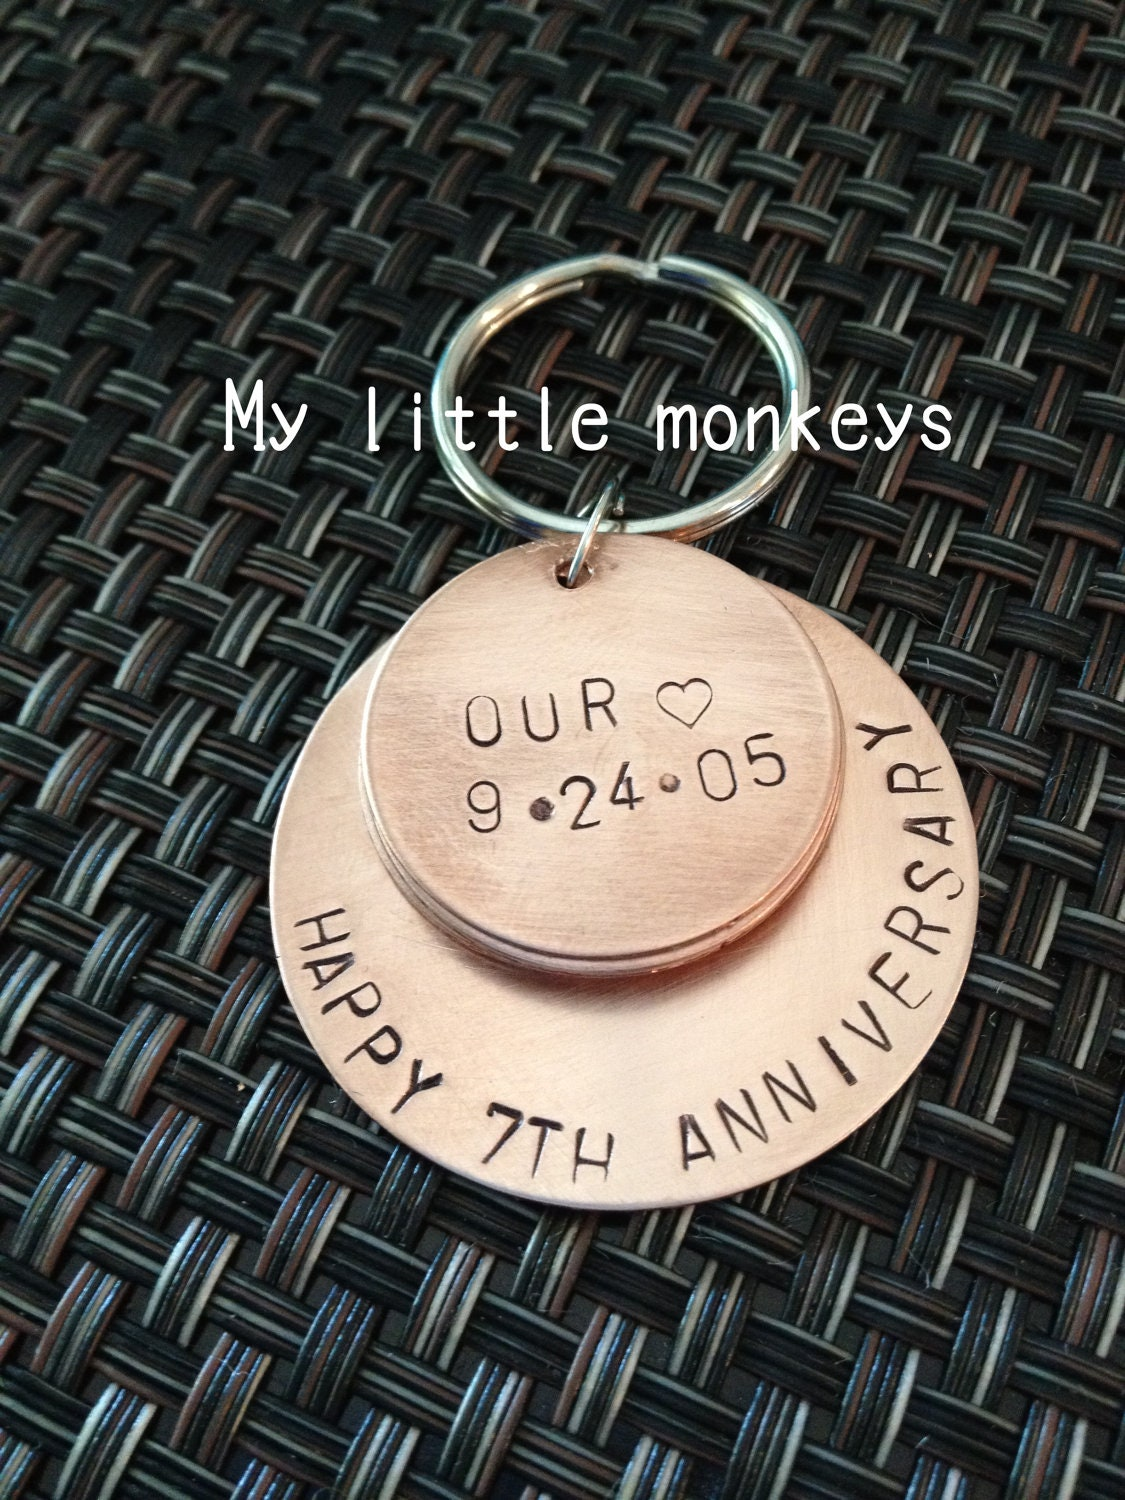 Wedding Gift Ideas For Second Marriage : Wedding Gift Ideas For Second Marriages myideasbedroom.com